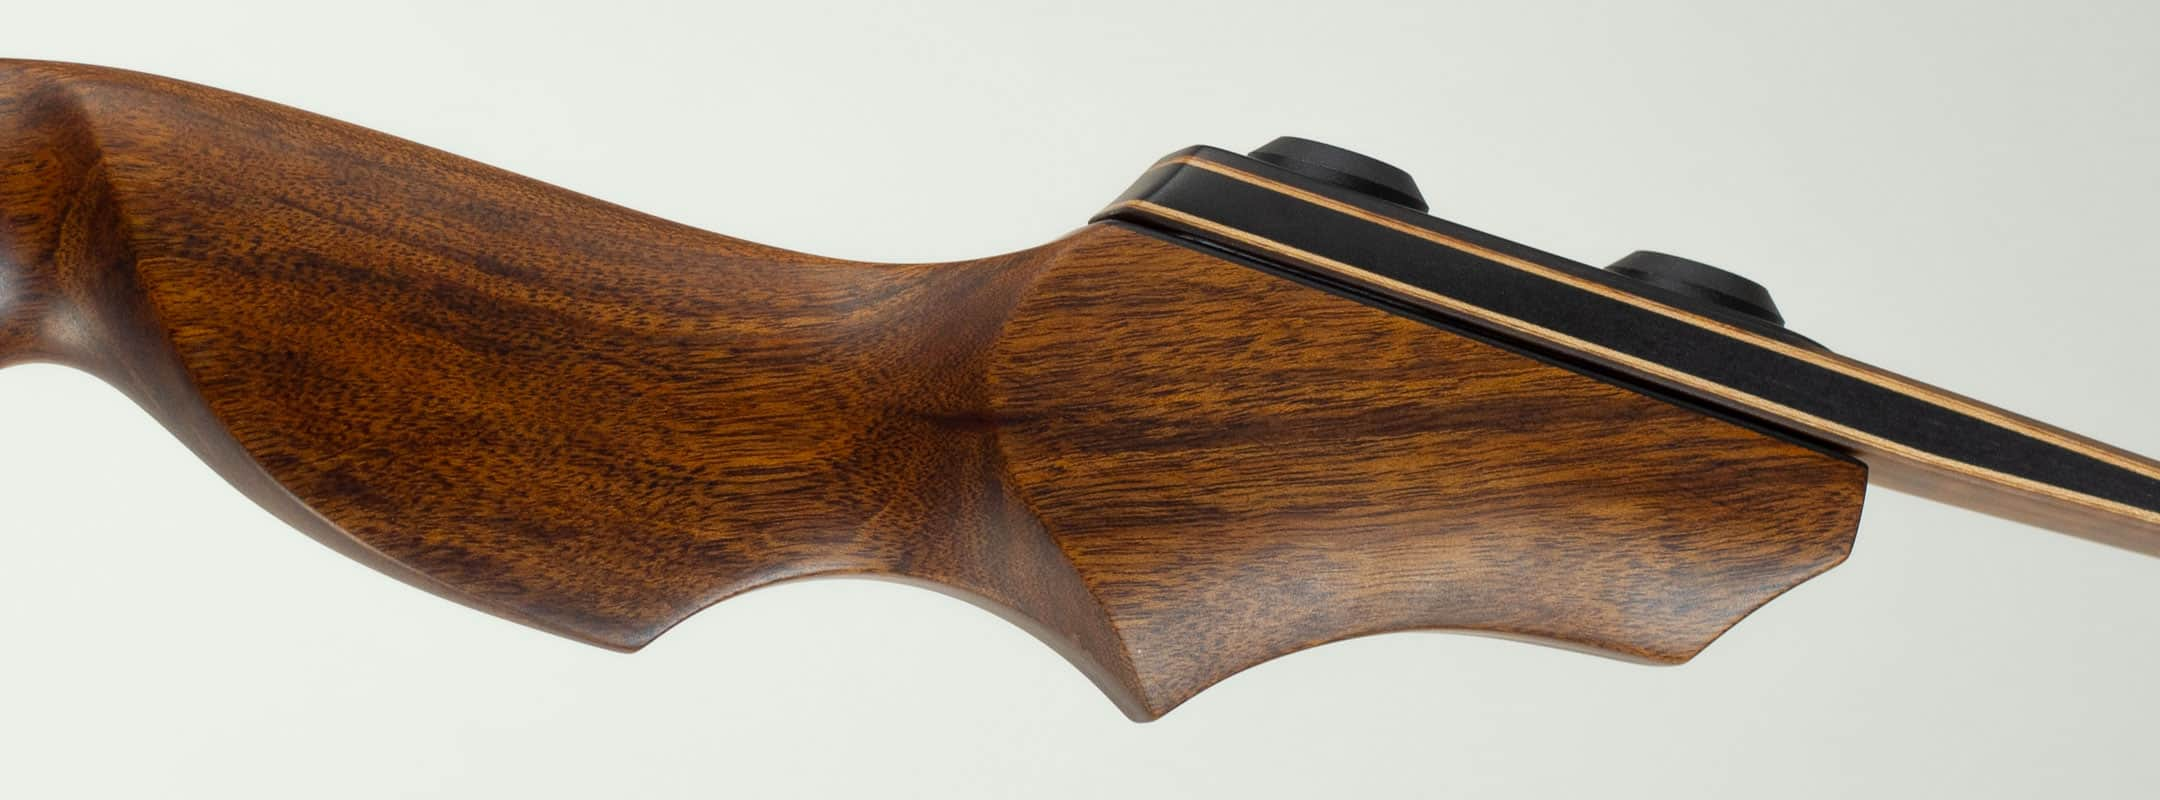 Closeup of Wood Grain on a Recurve Bow